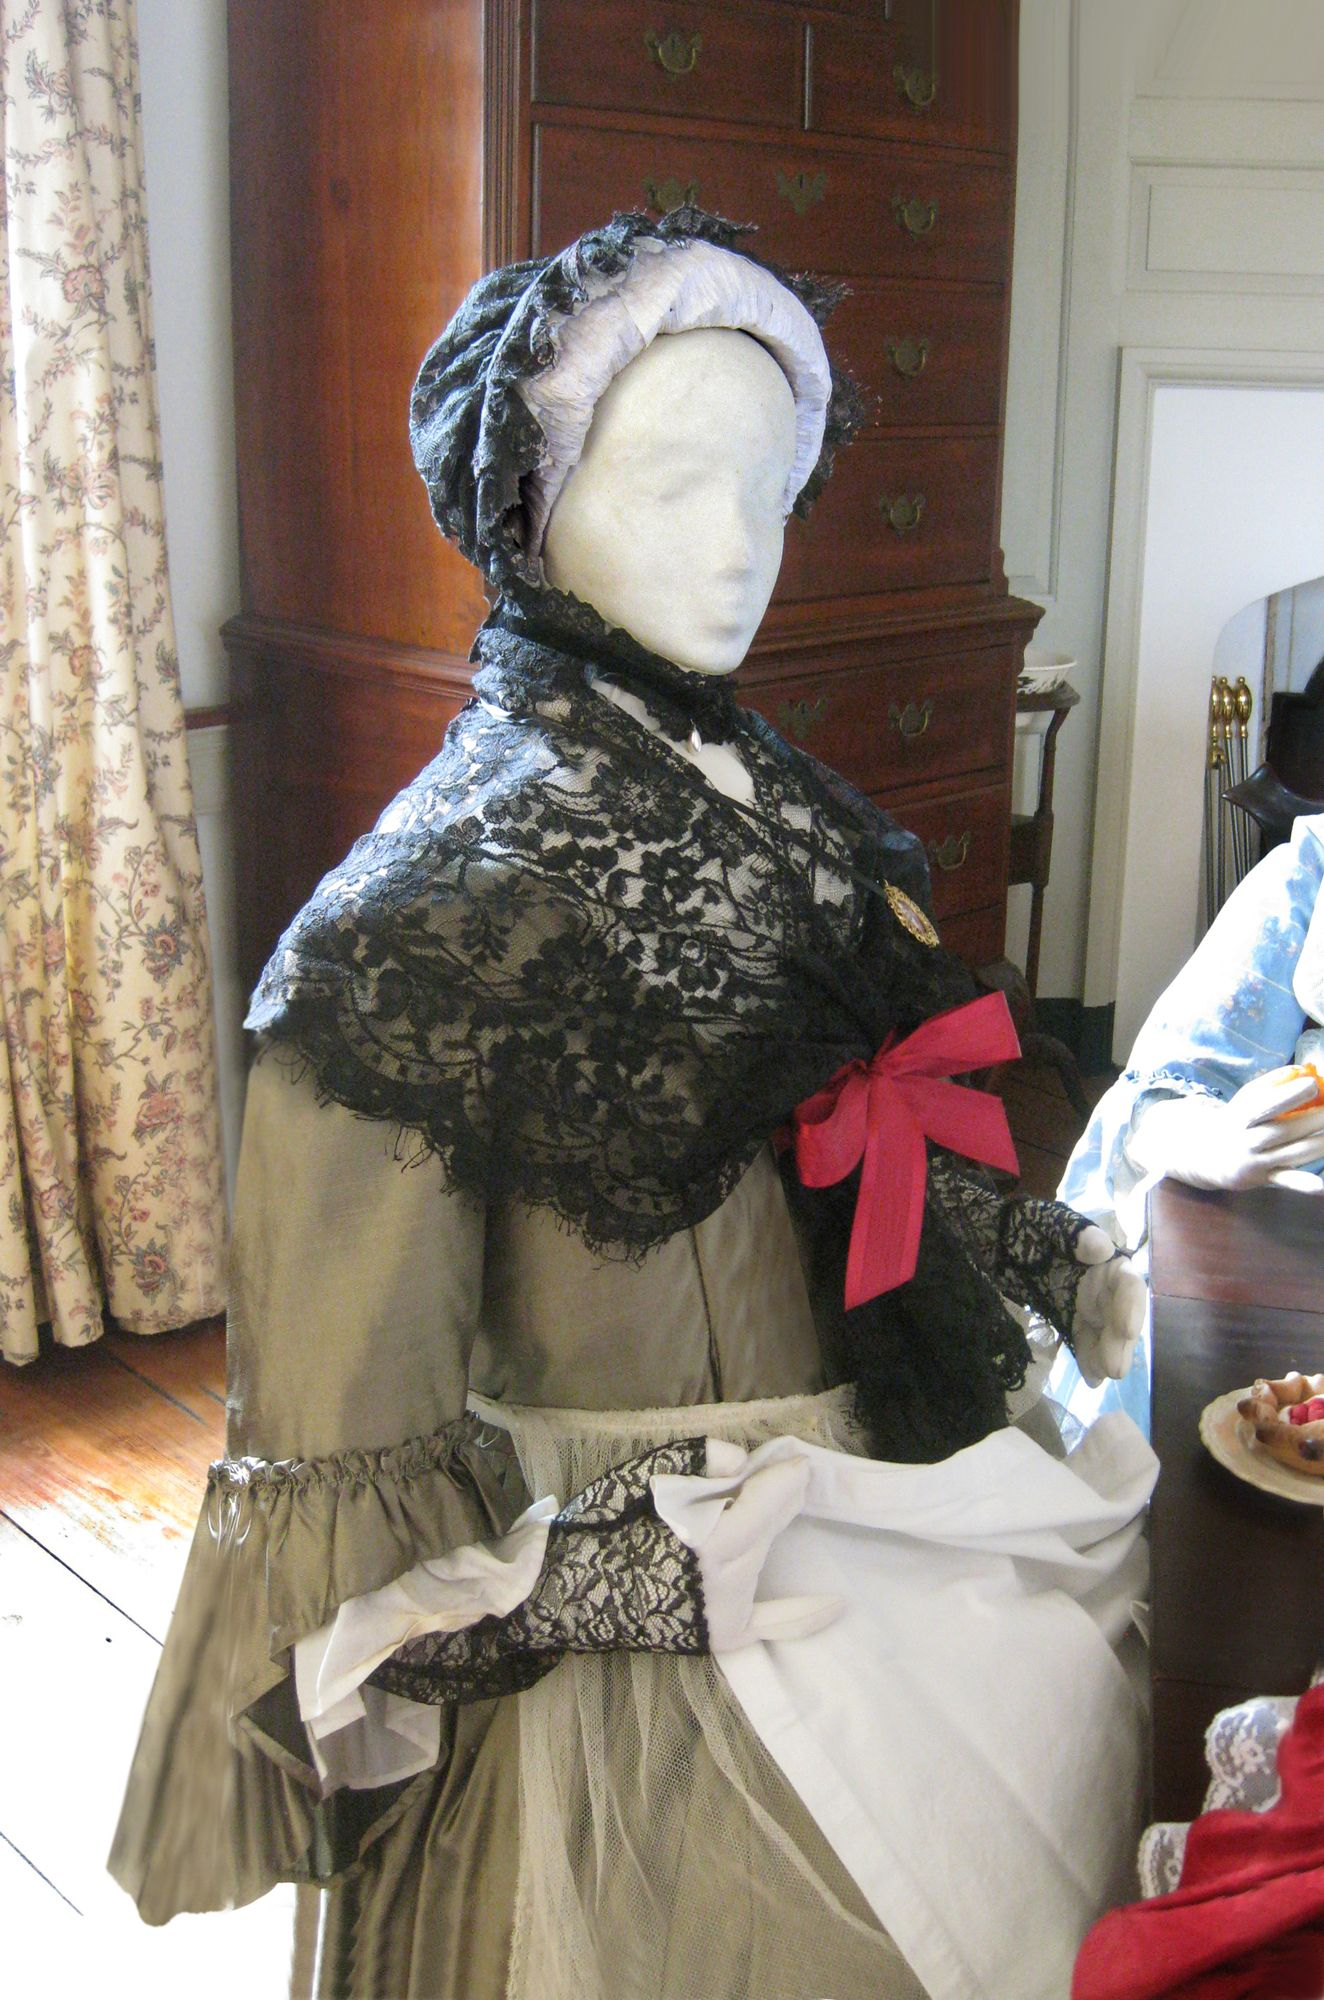 Family matriarch, Anna Savage Nutt, sits between her daughters Ruth and Rebecca. All three women were wed to, or widowed from, husbands who were leading ironmasters in PA. Her clothing reflects the refined taste of an older woman in the late 1750s.